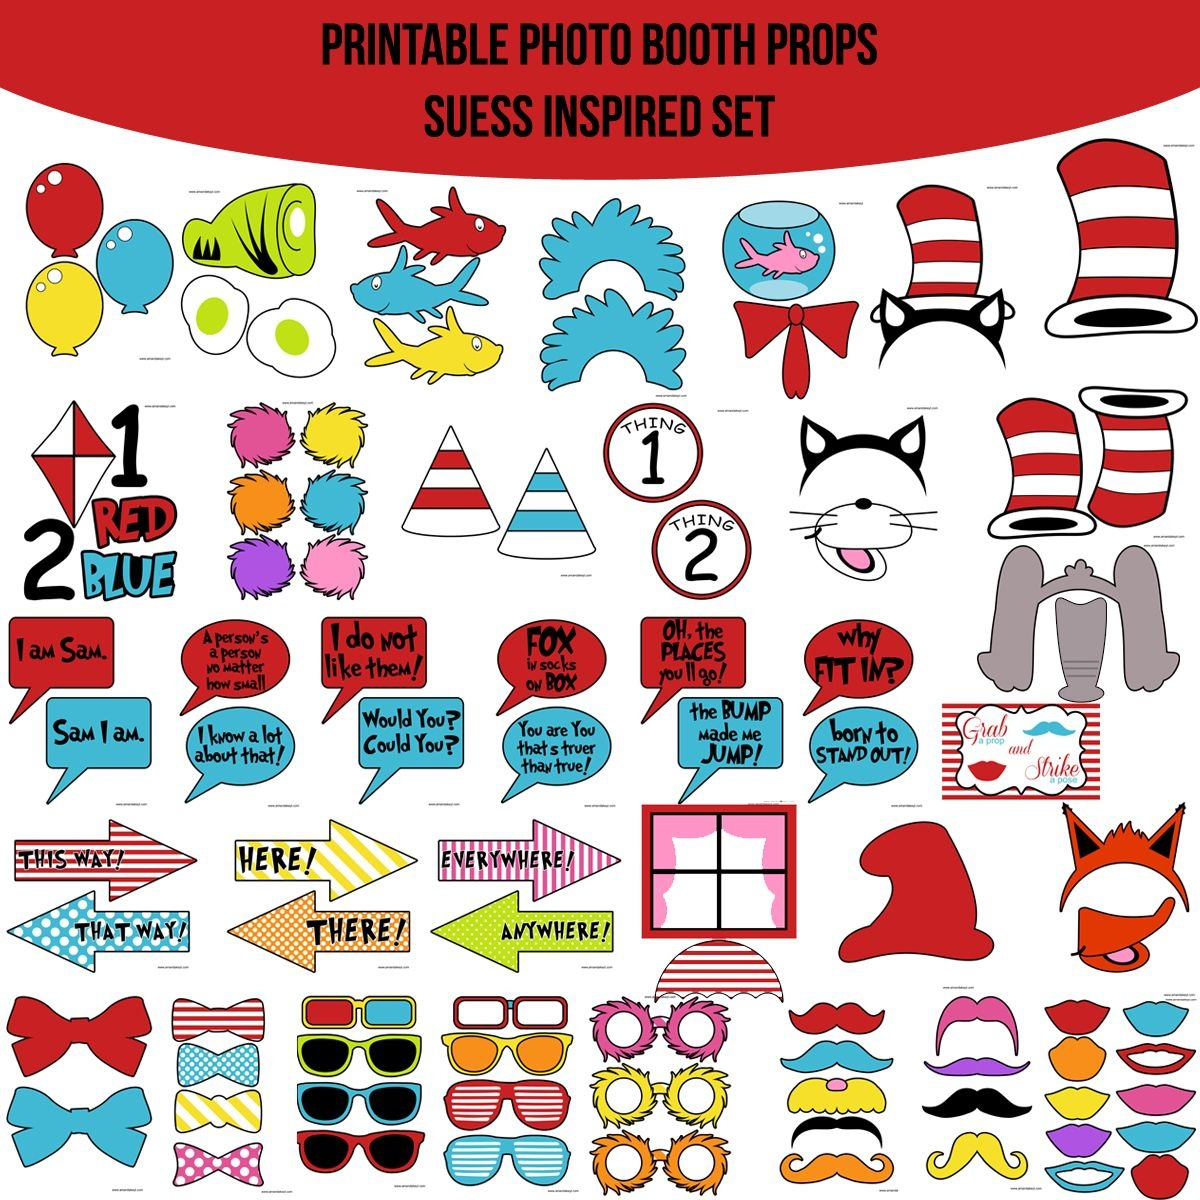 Instant Download Dr. Suess Inspired Printable Photo Booth Prop Set - Free Printable Dr Seuss Photo Props